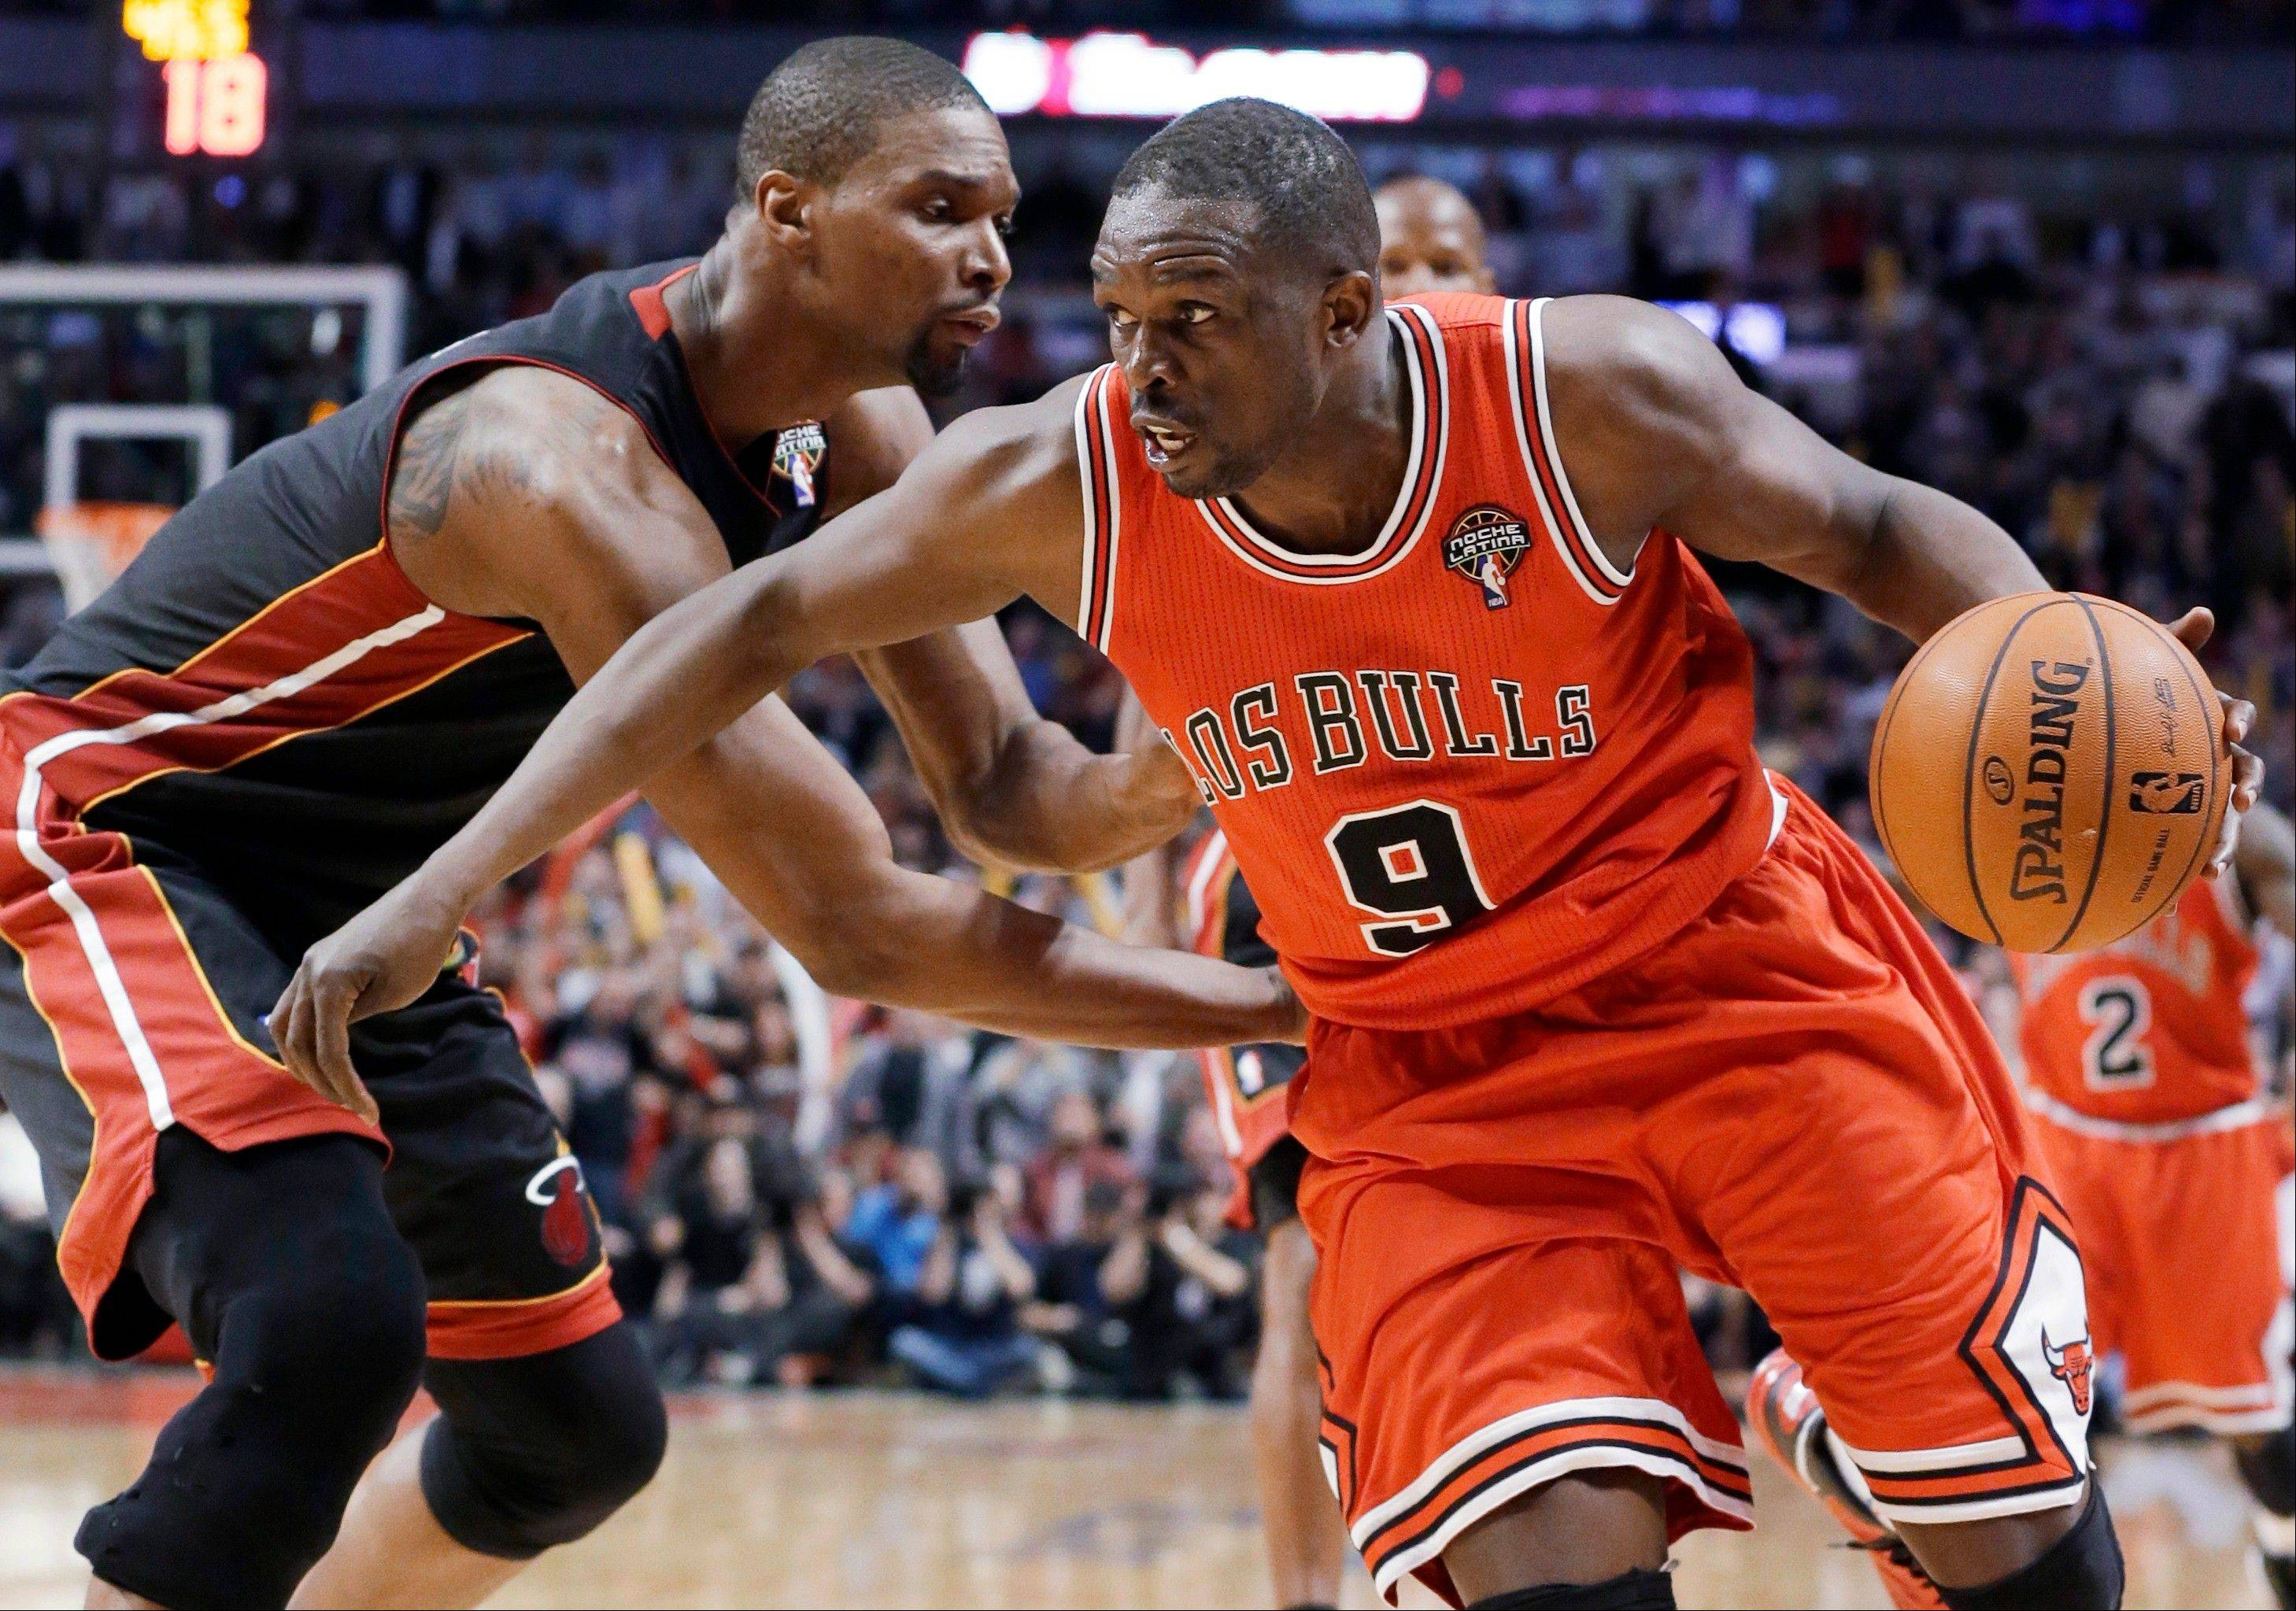 Chicago Bulls forward Luol Deng, right, drives against Miami Heat center Chris Bosh Wednesday night at the United Center. The Bulls won 101-97, ending the Heat's 27-game winning streak.